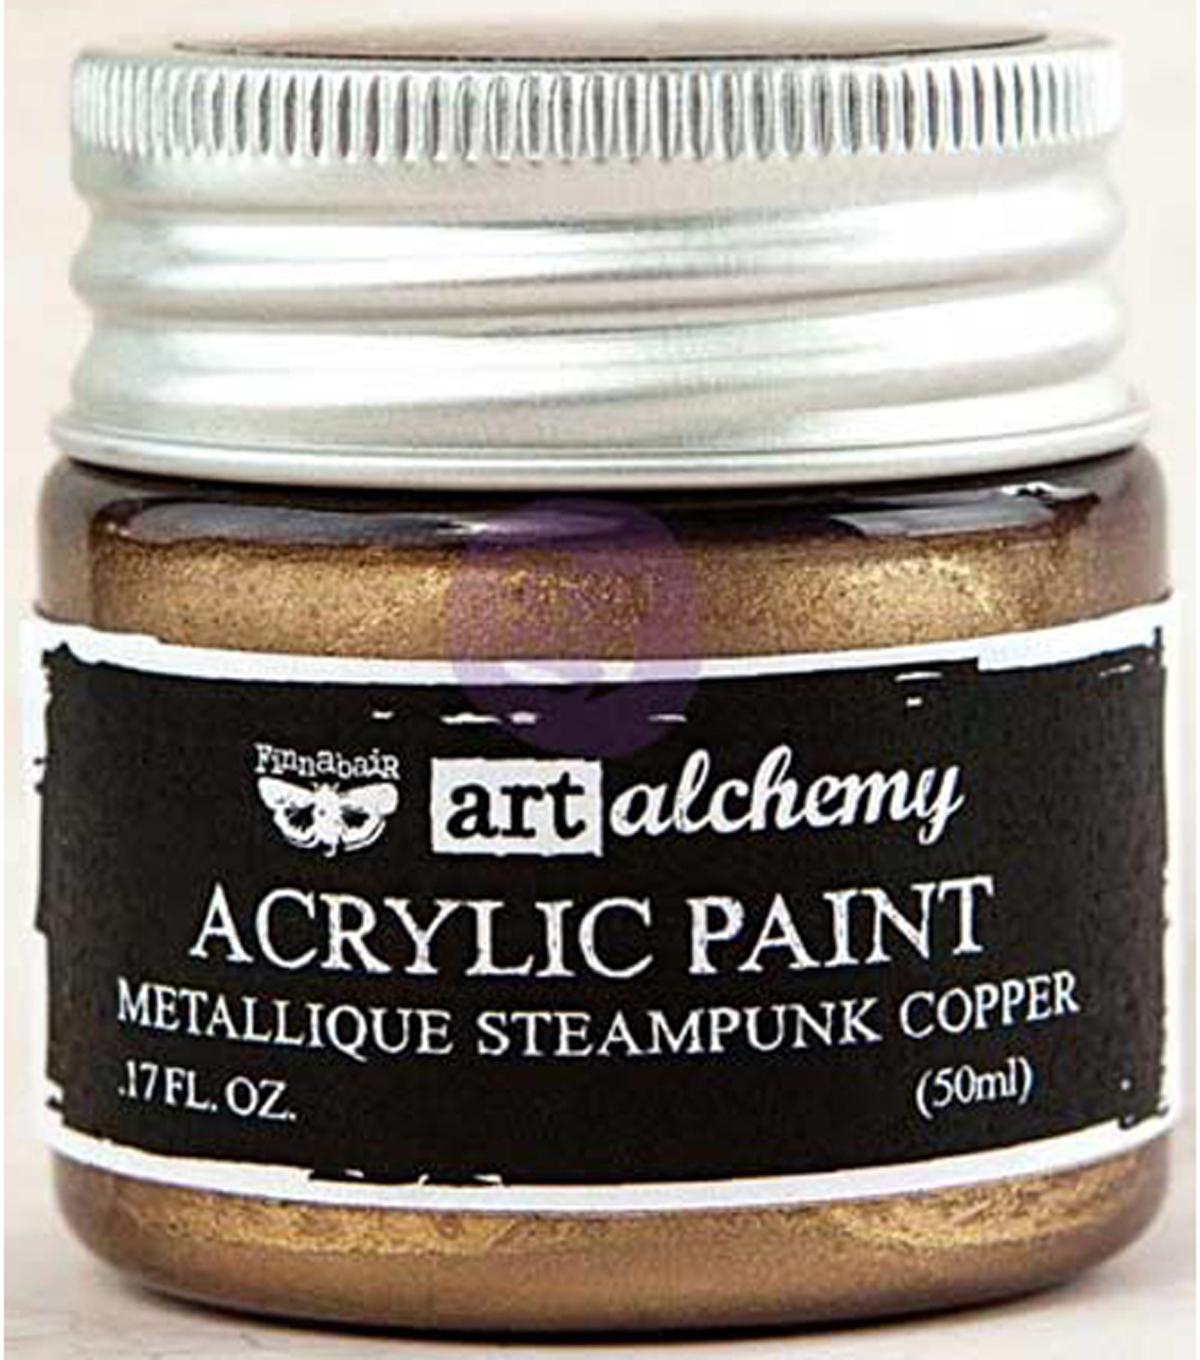 Prima Marketing Art Alchemy Acrylic Paint-Metallique Steampunk Copper